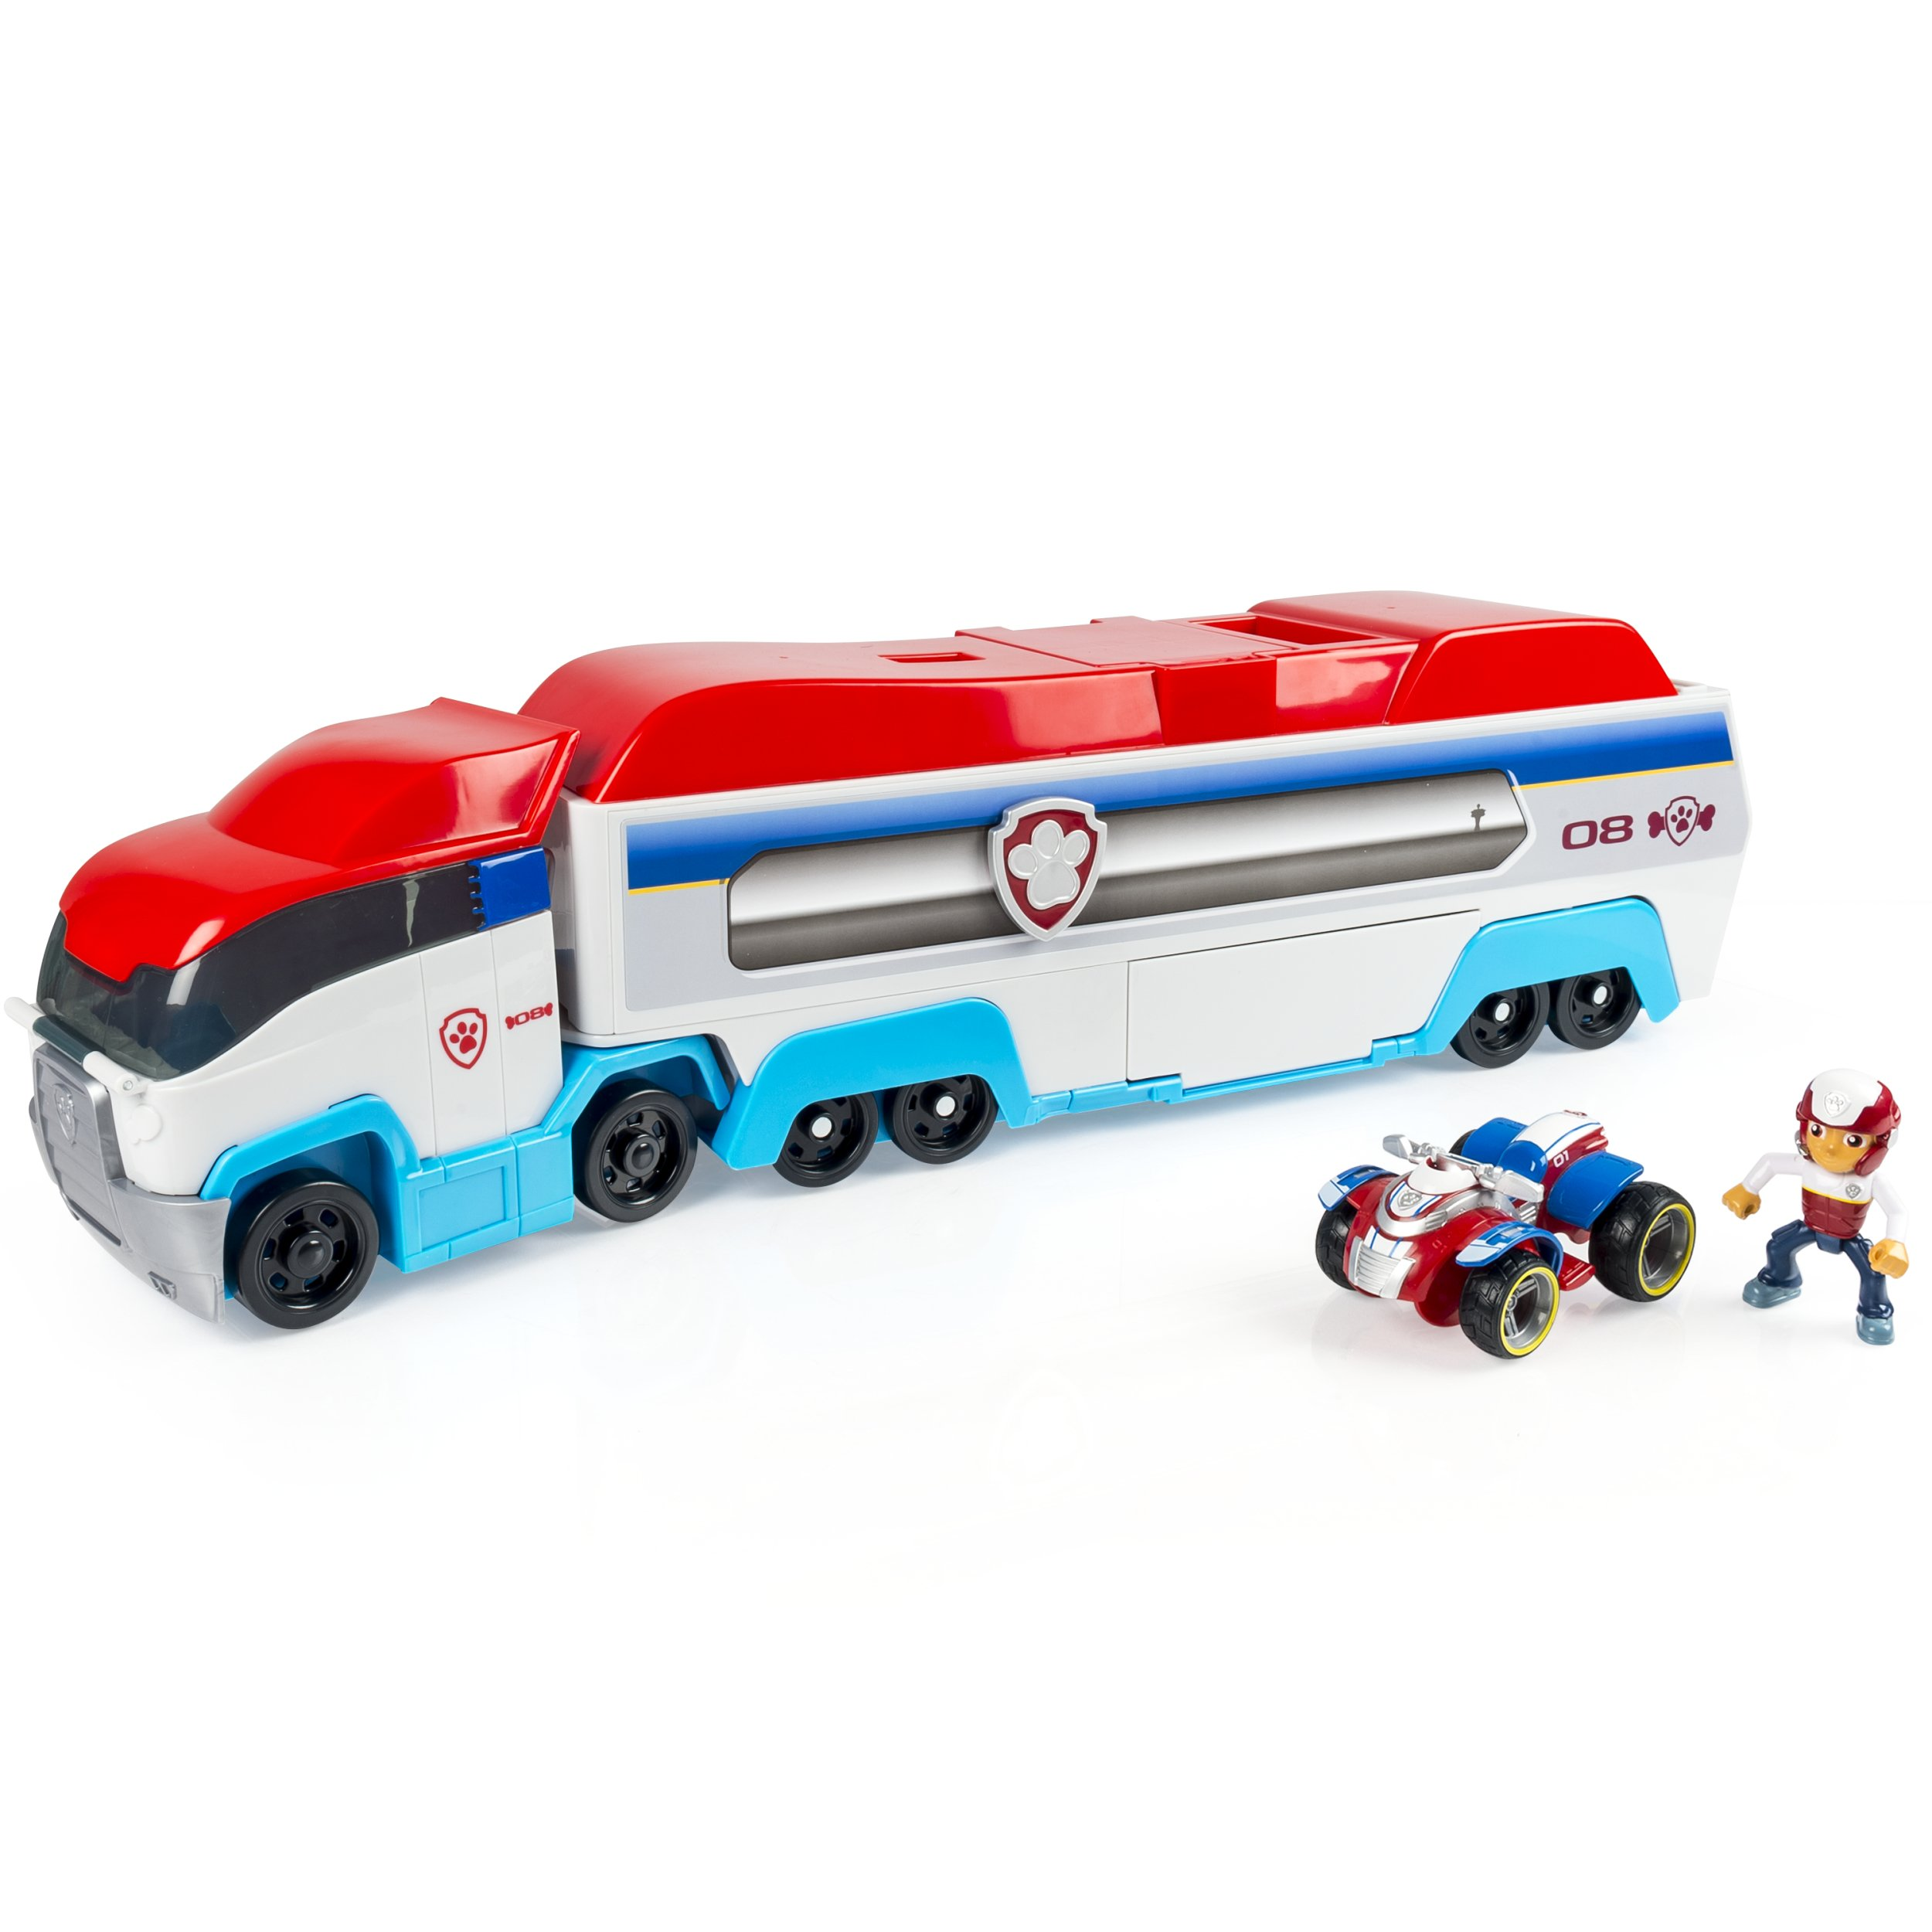 PAW Patrol - PAW Patroller Rescue & Transport Vehicle, Ages 3 and Up